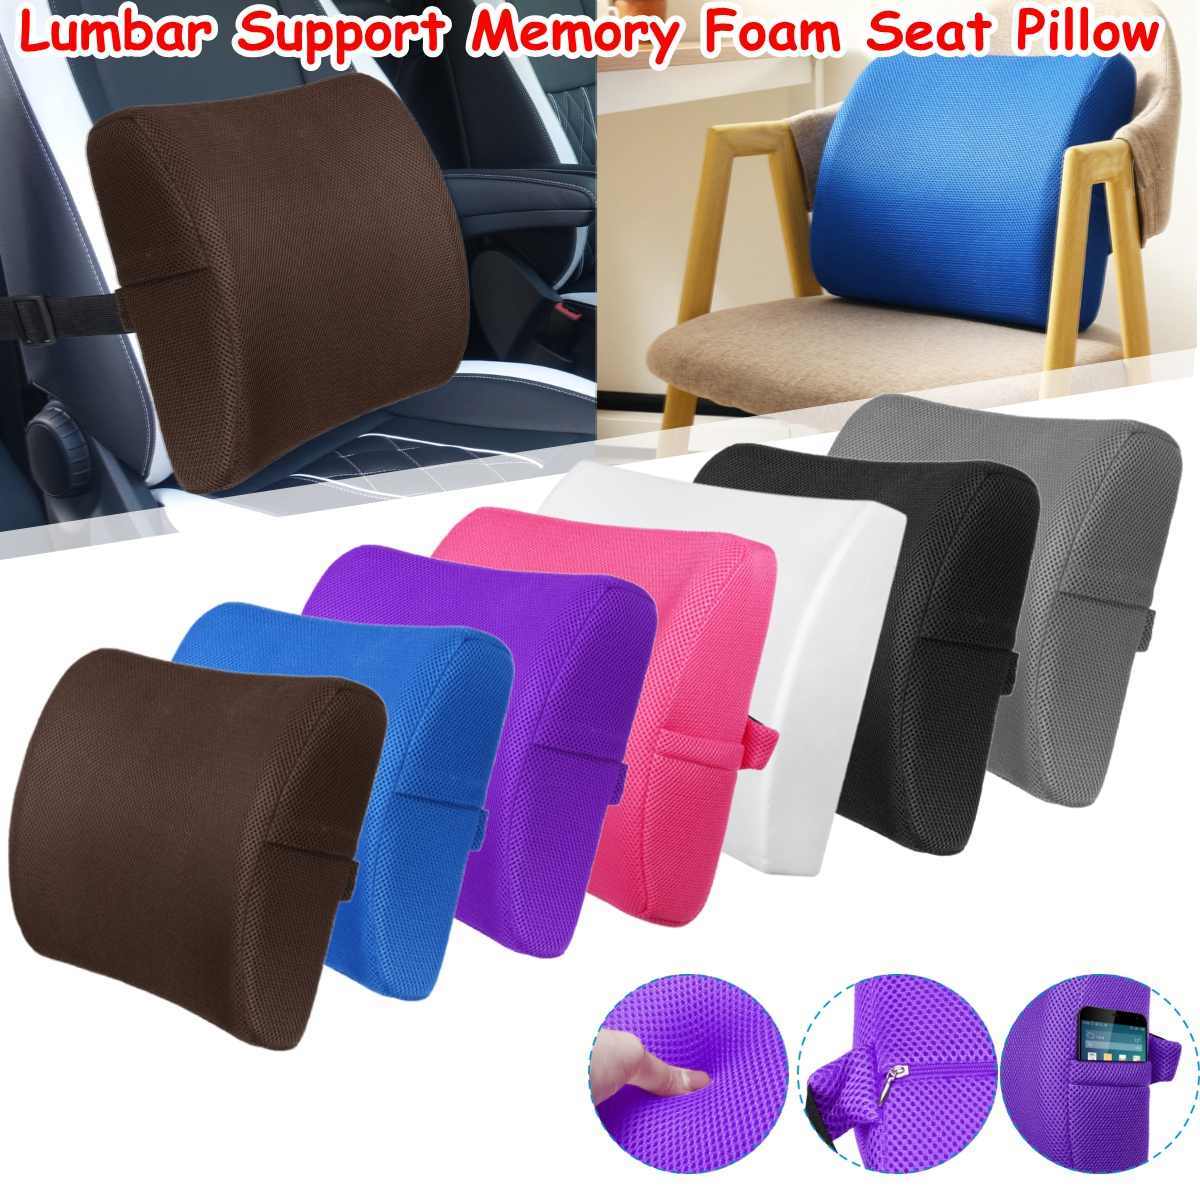 Soft Memory Foam Car Seat Pillows Breathable Lumbar Support Back Massager Waist Cushion For Chairs Home Office Relieve Pain Warm